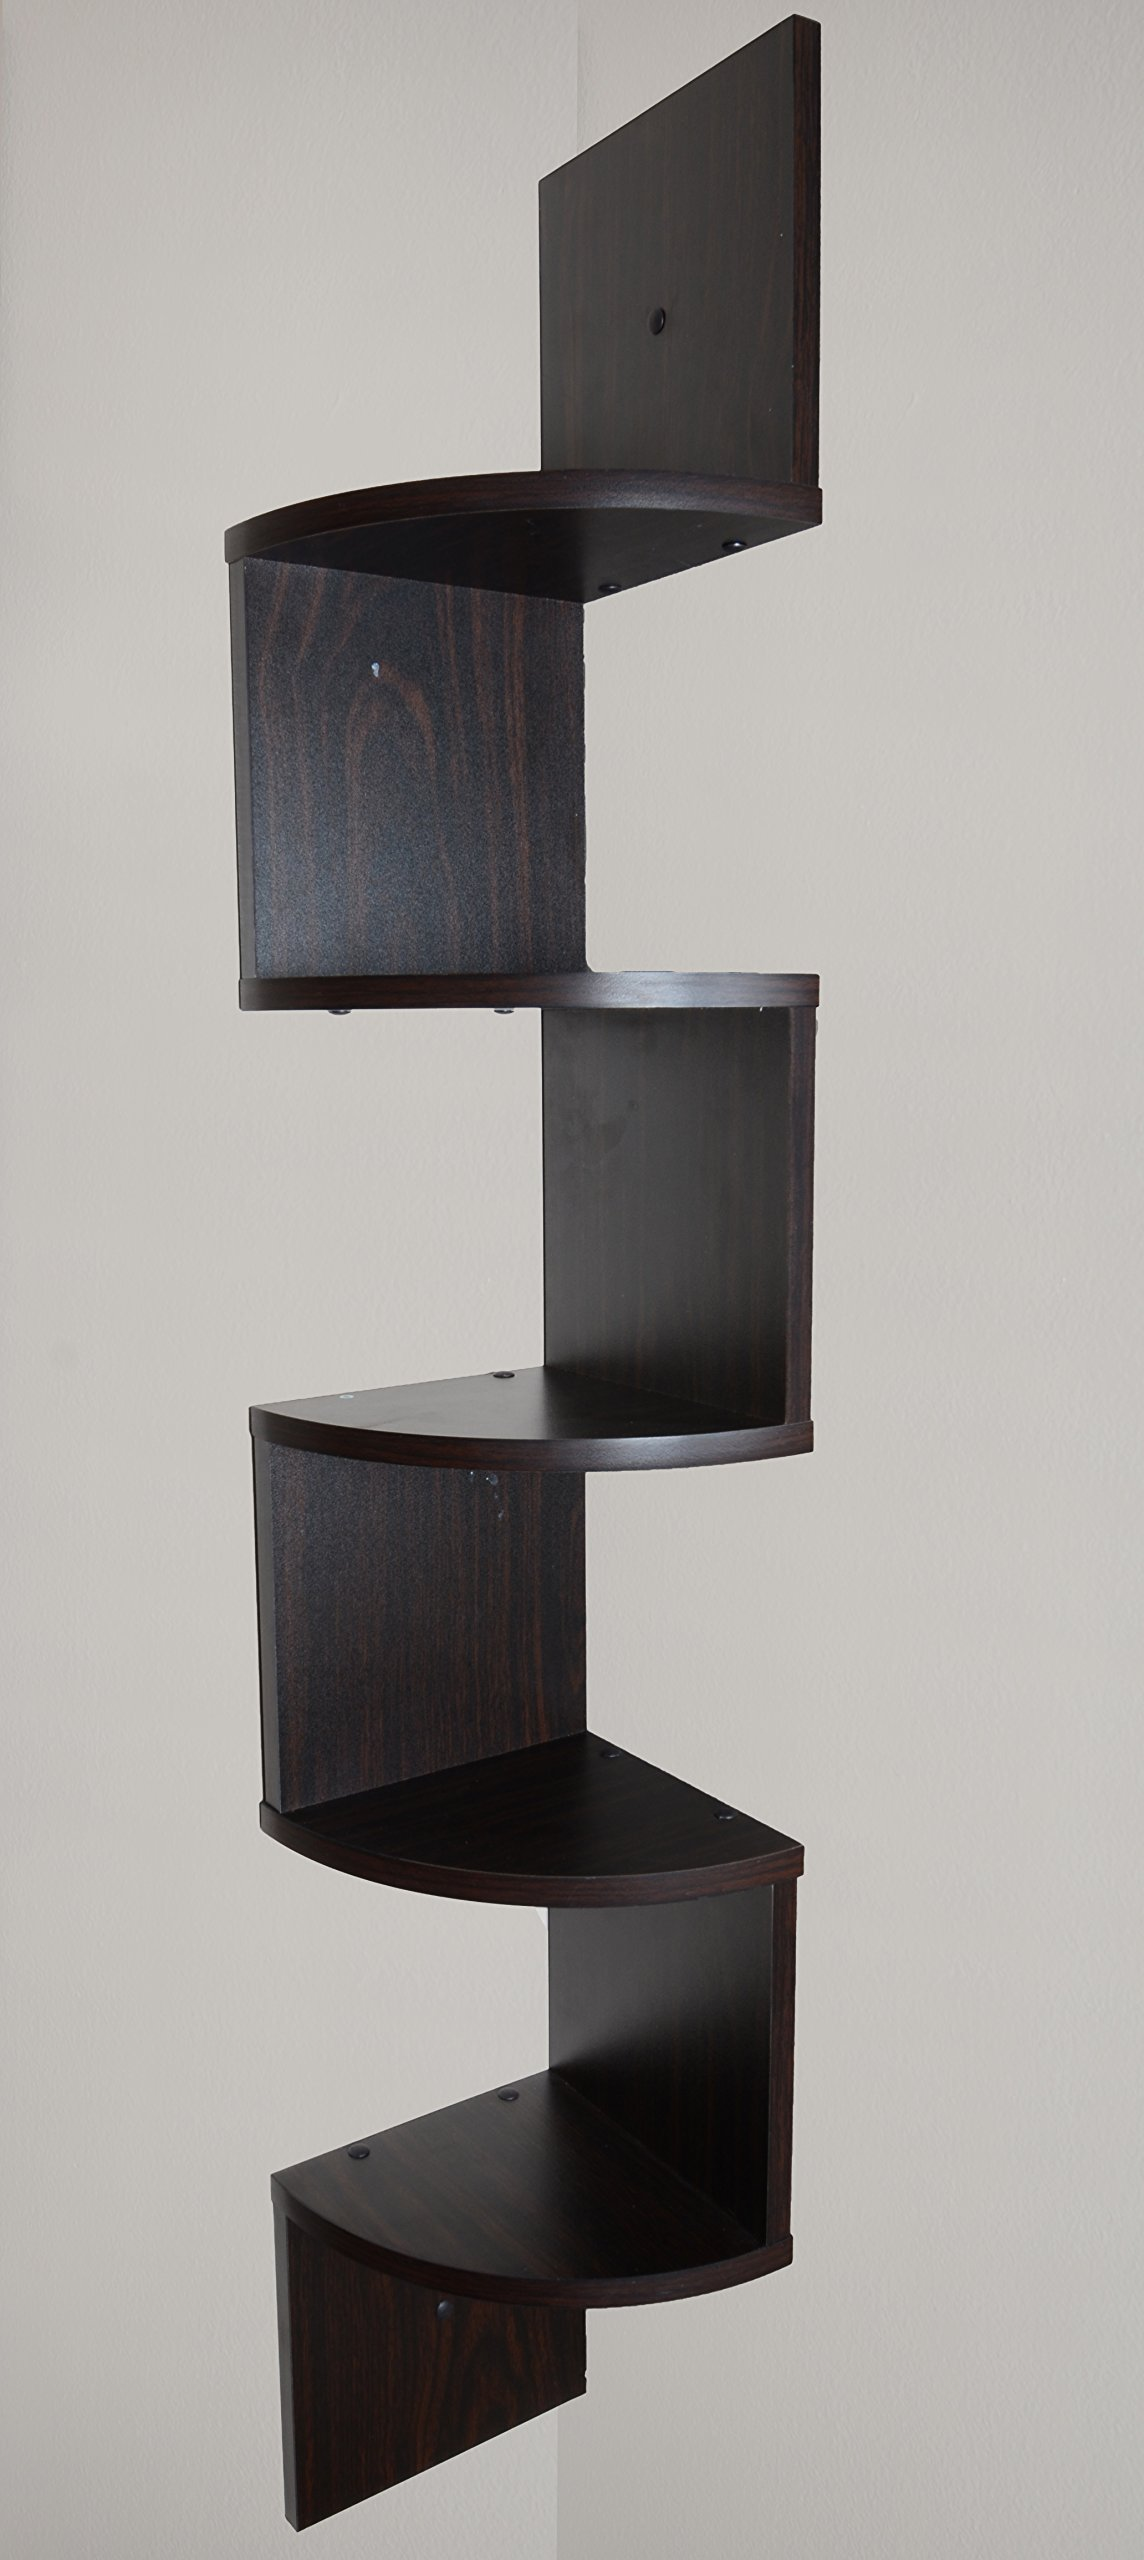 Adorn Home Essentials| Corner Zig Zag Wall Mount Shelves| 5-Tier, Walnut Finish